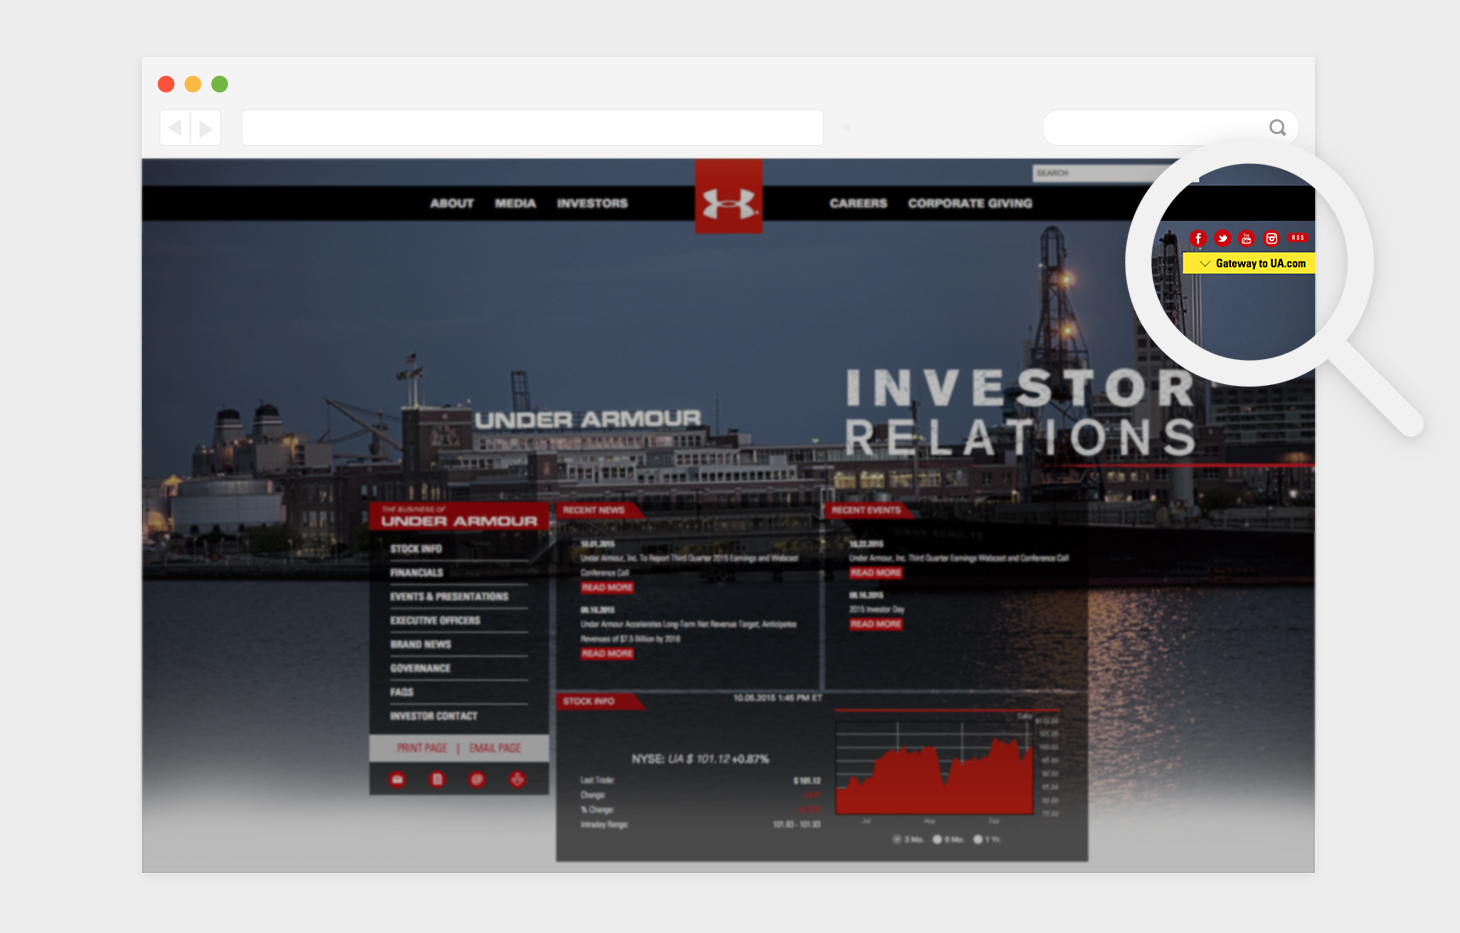 How to use Call-to-Actions for investor relations UA